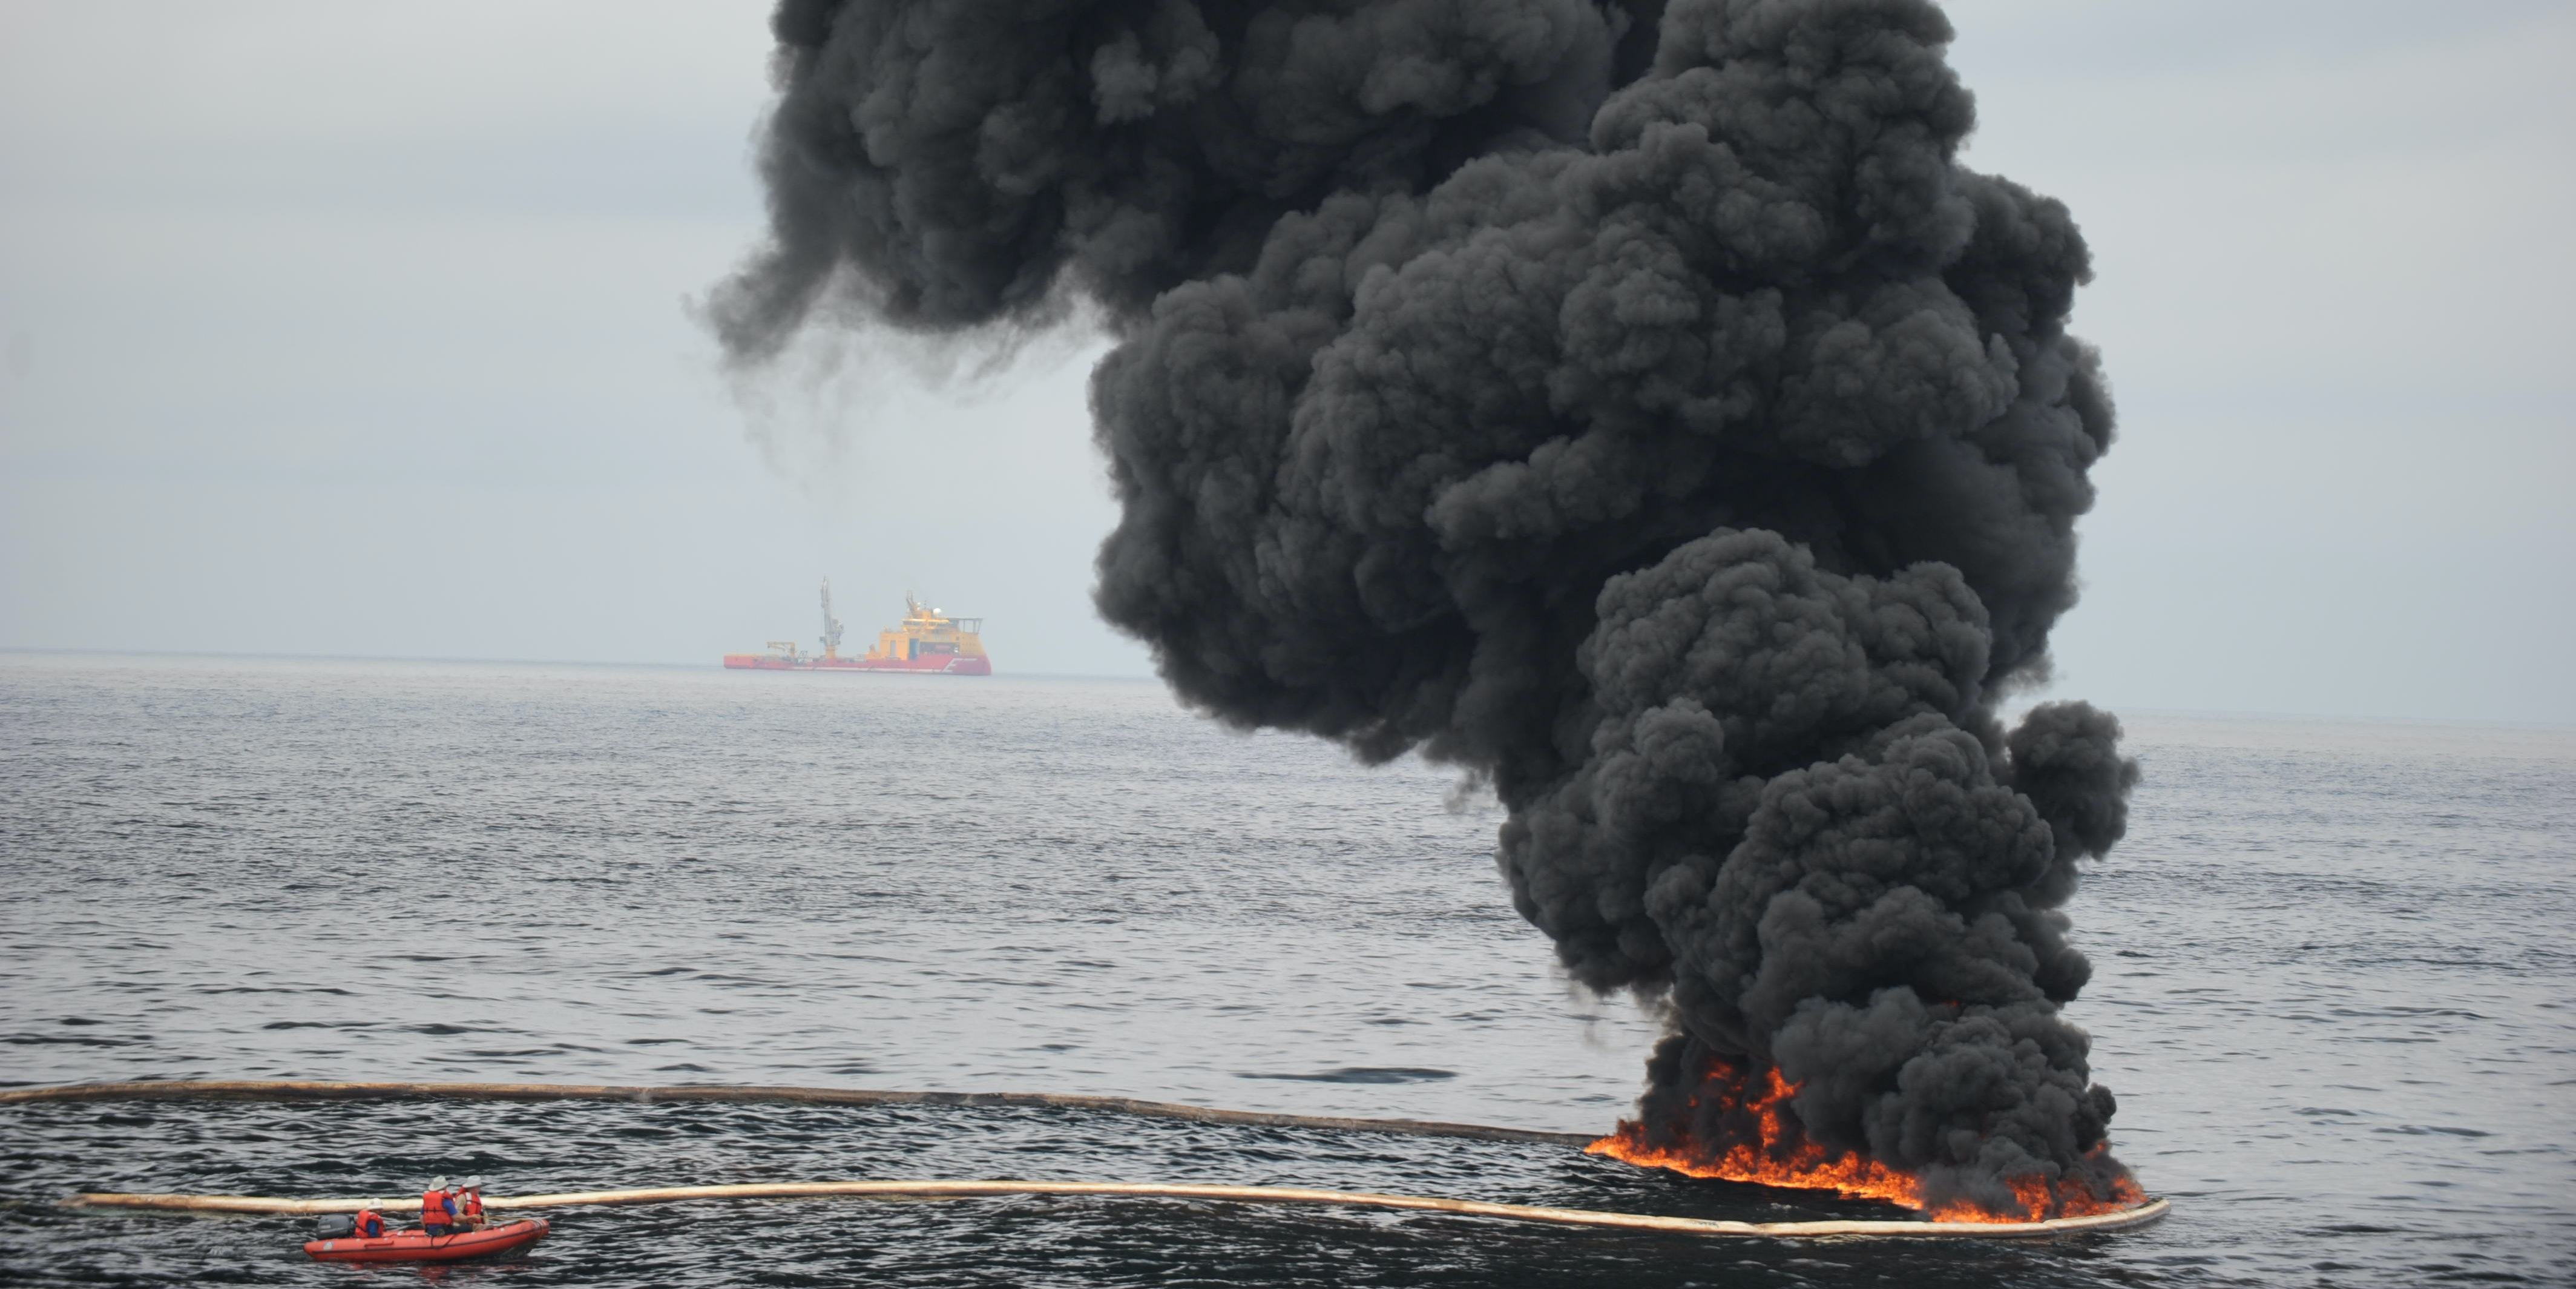 GULF OF MEXICO- MAY 5:  Gathered concentrated oil burns during a controlled oil fire May 5, 2010 in the Gulf of Mexico. The U.S. Coast Guard oversaw the oil burn after the sinking and subsequent massive oil leak because of the sinking of the Deepwater Horizon oil platform off the coast of Louisiana.  (Photo by Justin E. Stumberg/U.S. Navy via Getty Images)